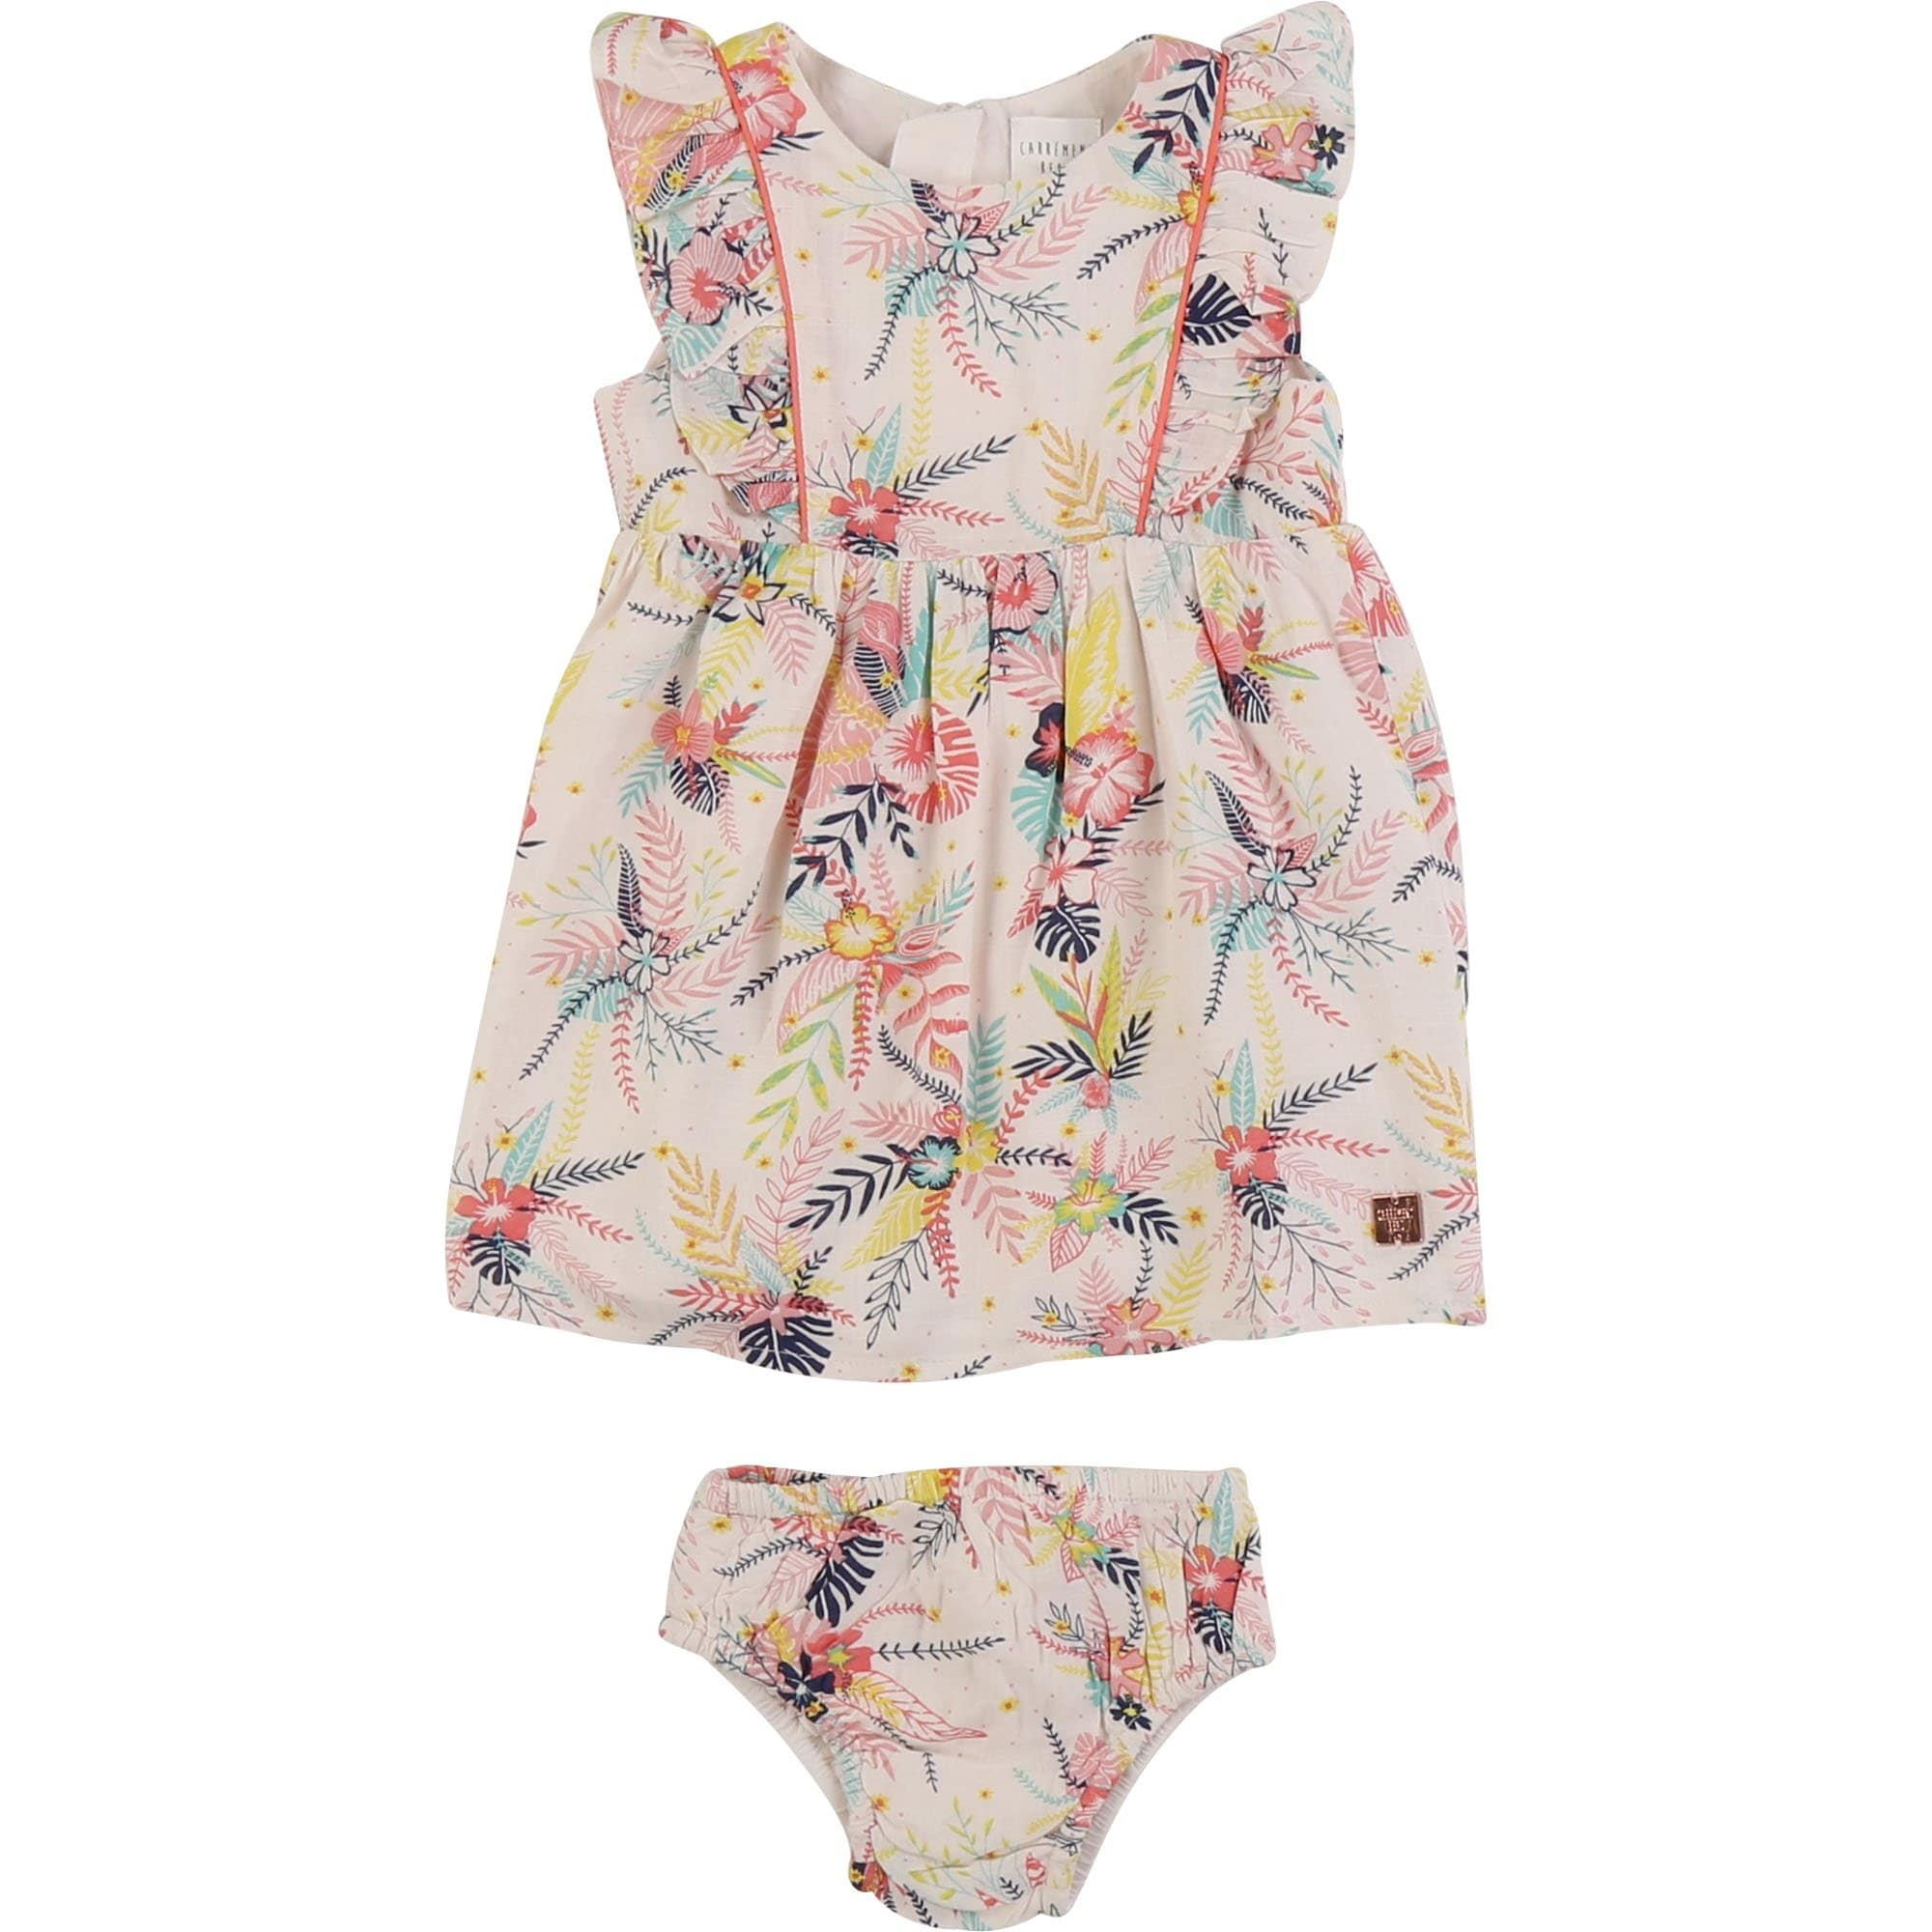 Carrement Beau Floral Dress and Bloomer Set